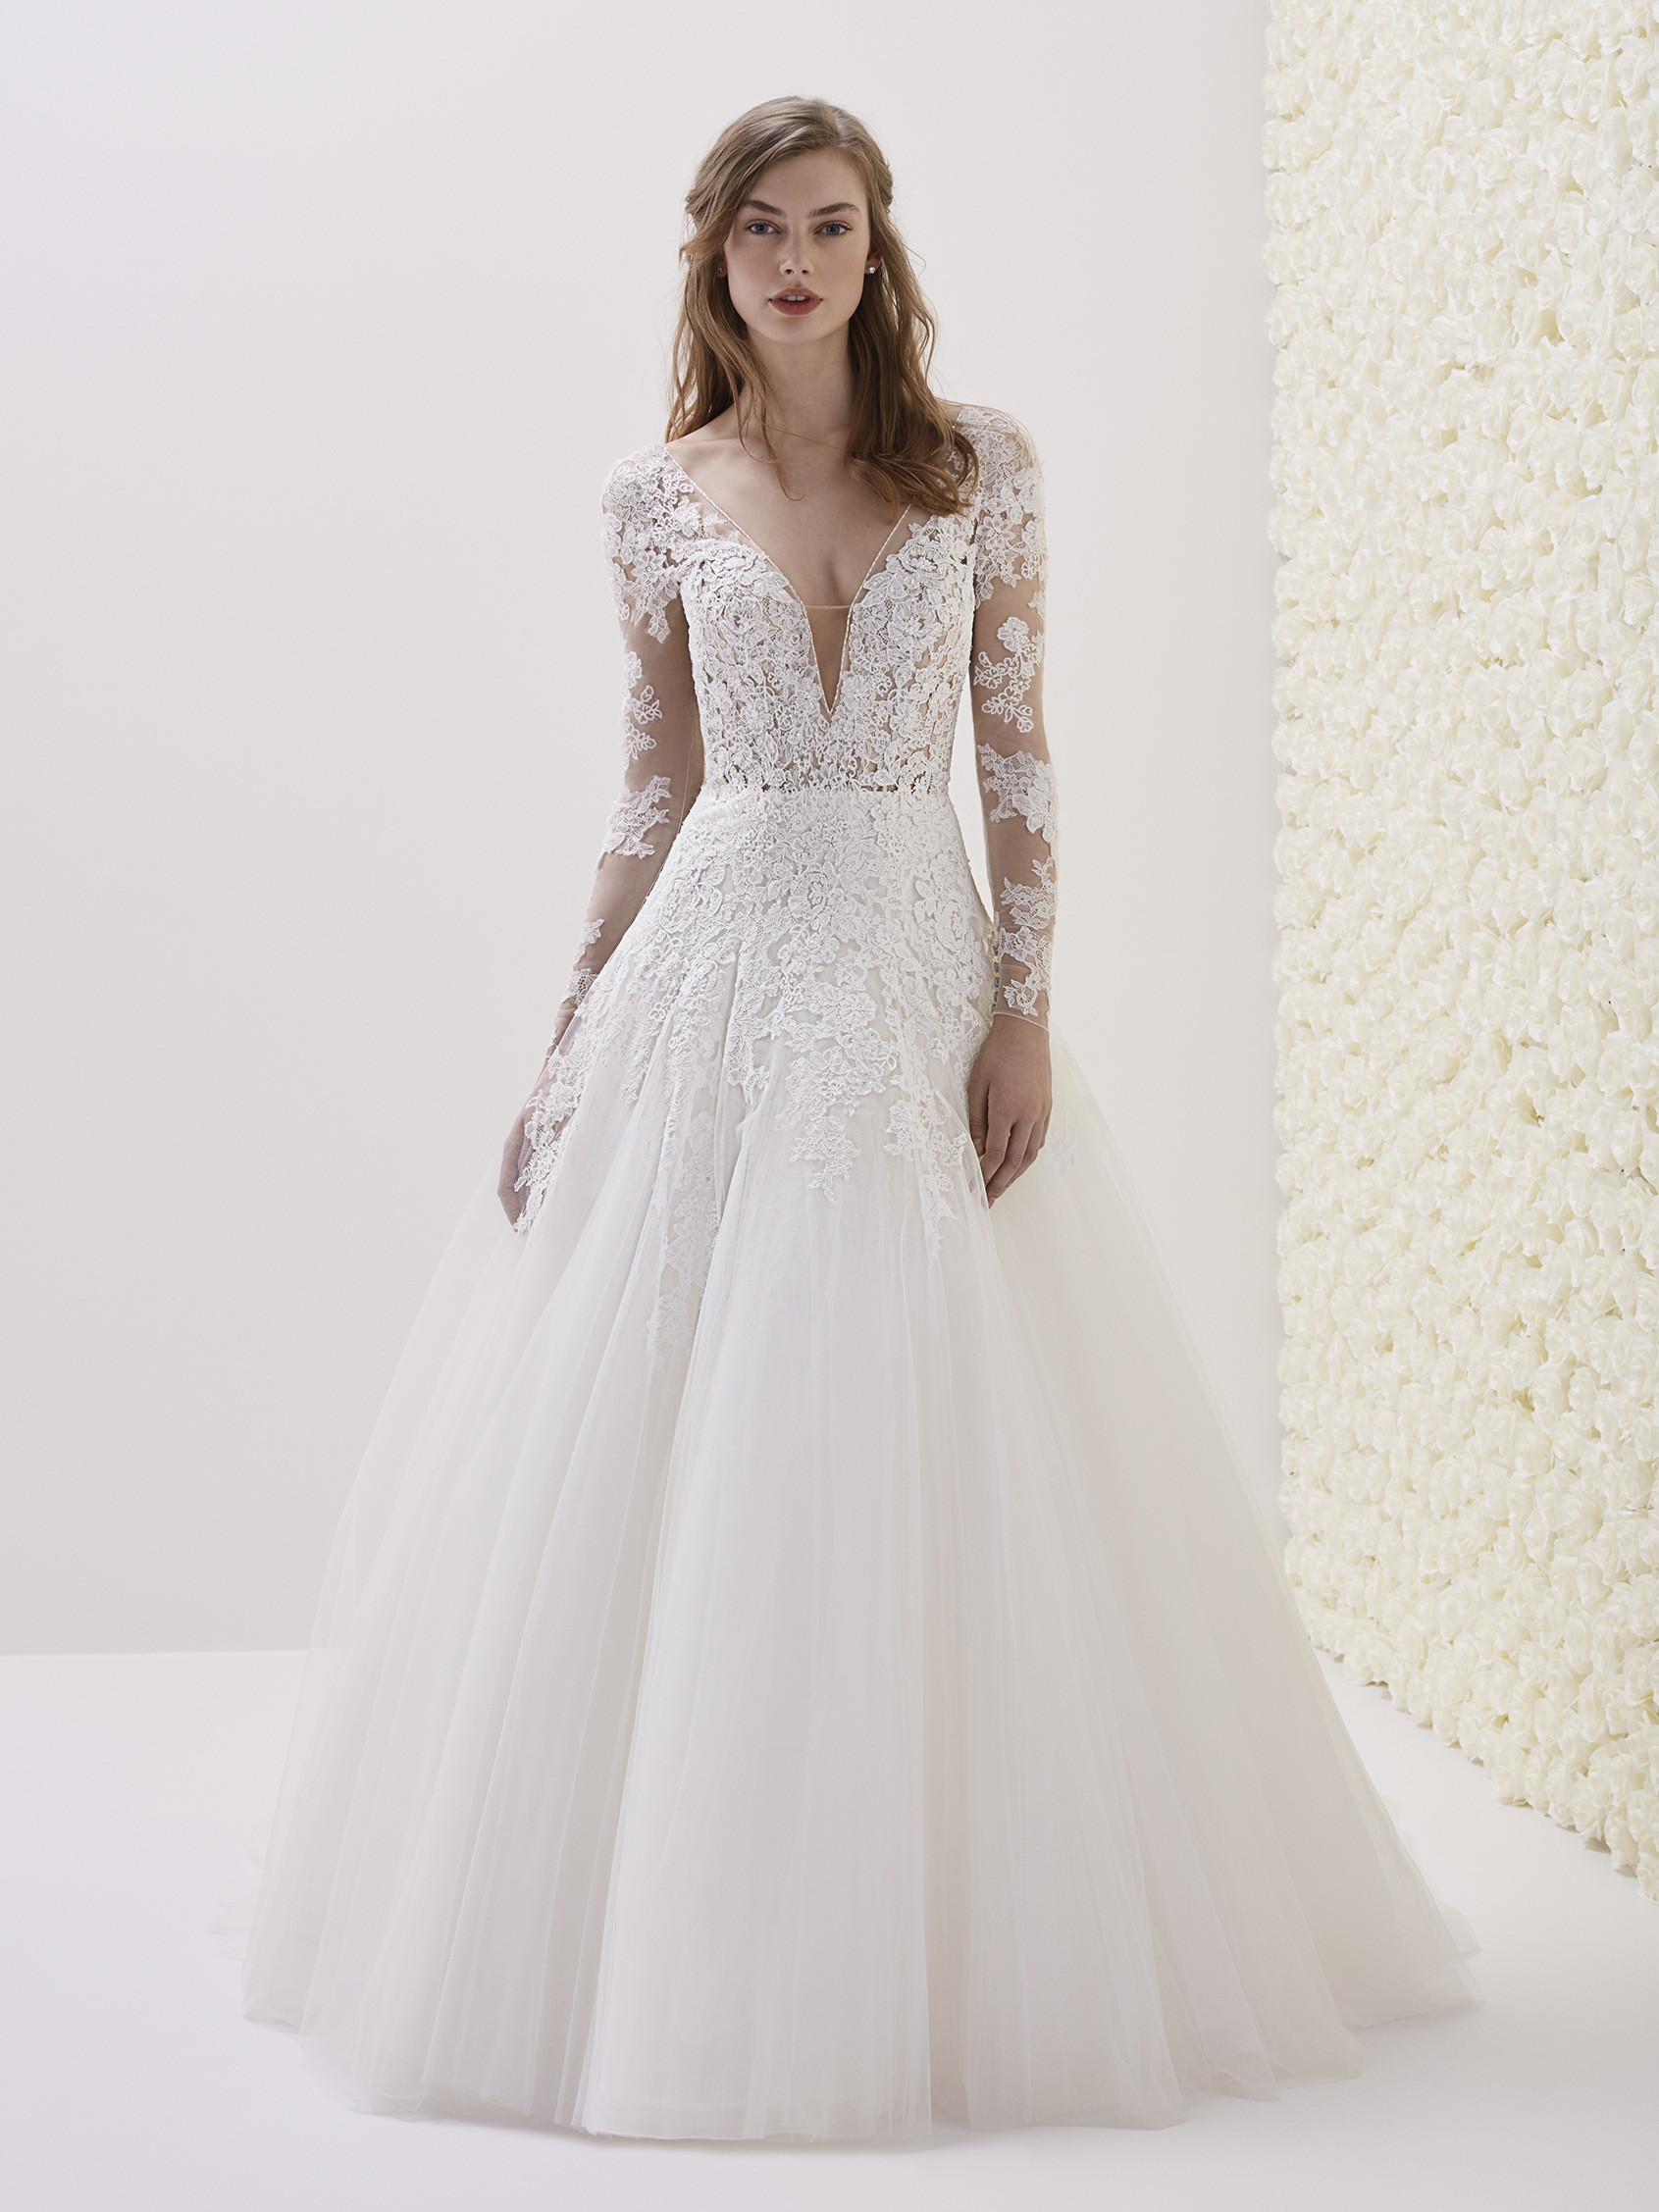 Deep V-neck Long Sleeve Lace A-line Wedding Dress | Kleinfeld Bridal